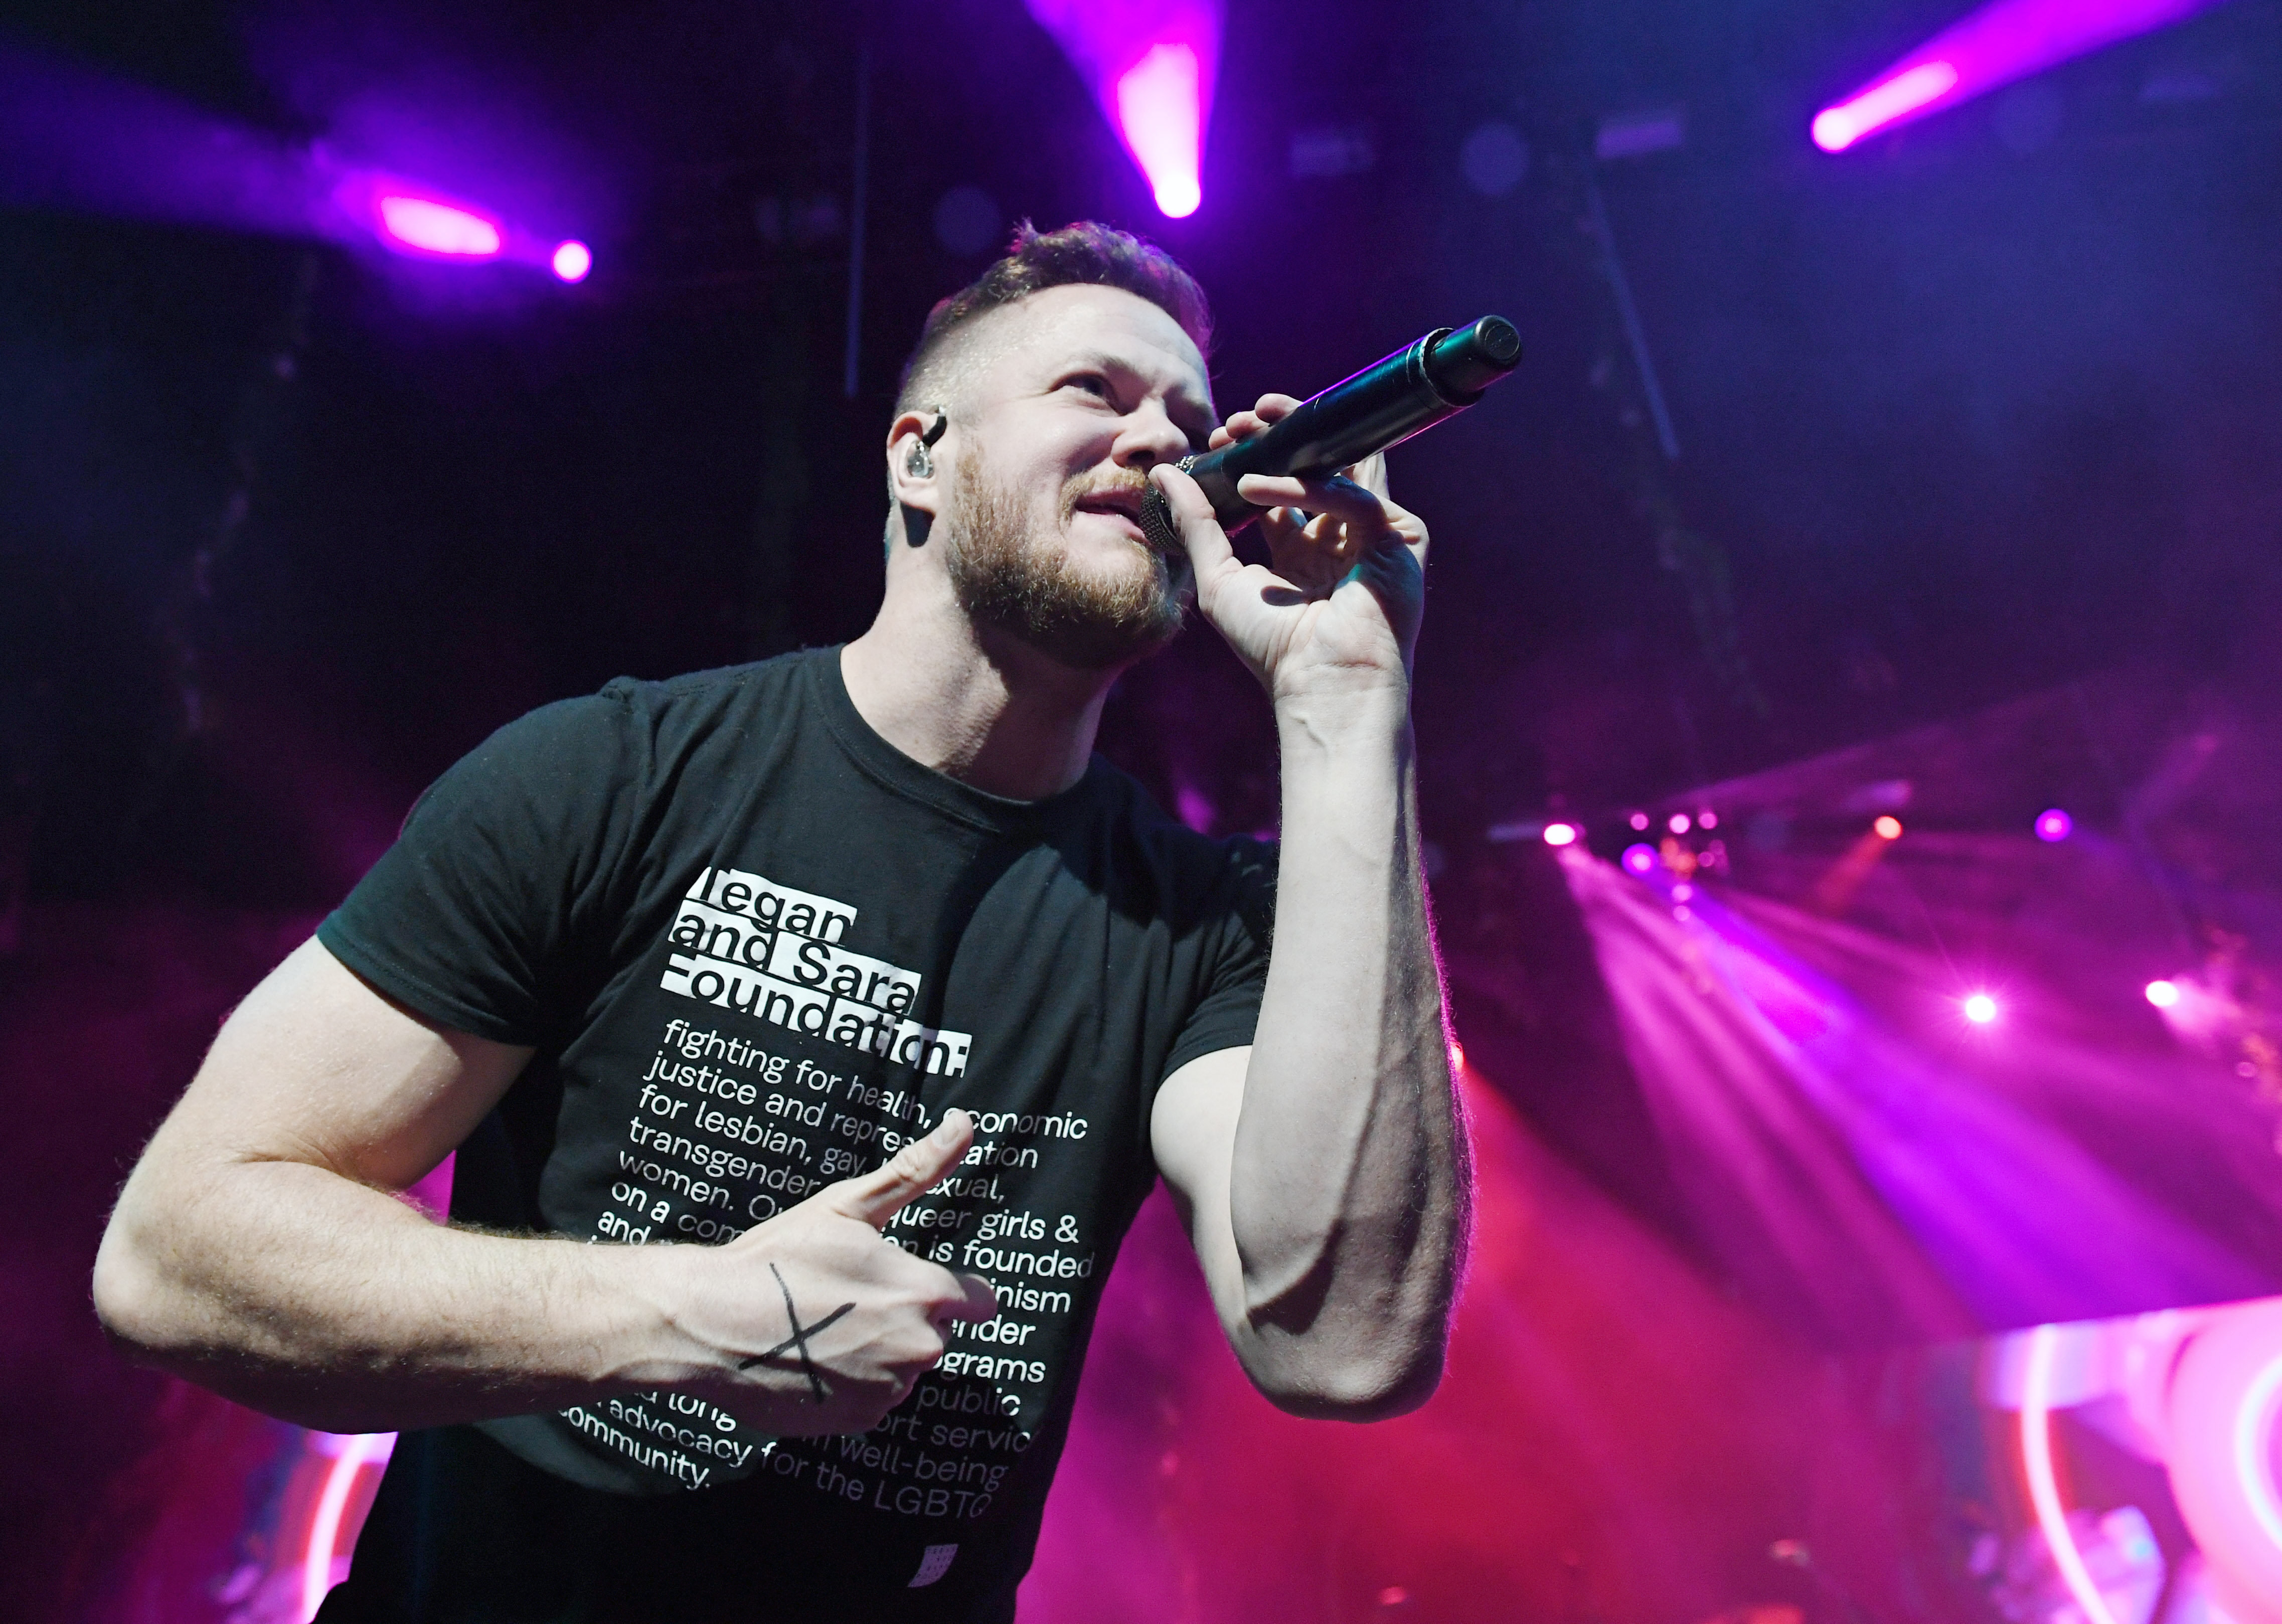 Frontman Dan Reynolds of Imagine Dragons performs during the Origins Experience pop-up concert at The Chelsea at The Cosmopolitan of Las Vegas on November 7, 2018 in Las Vegas, Nevada.